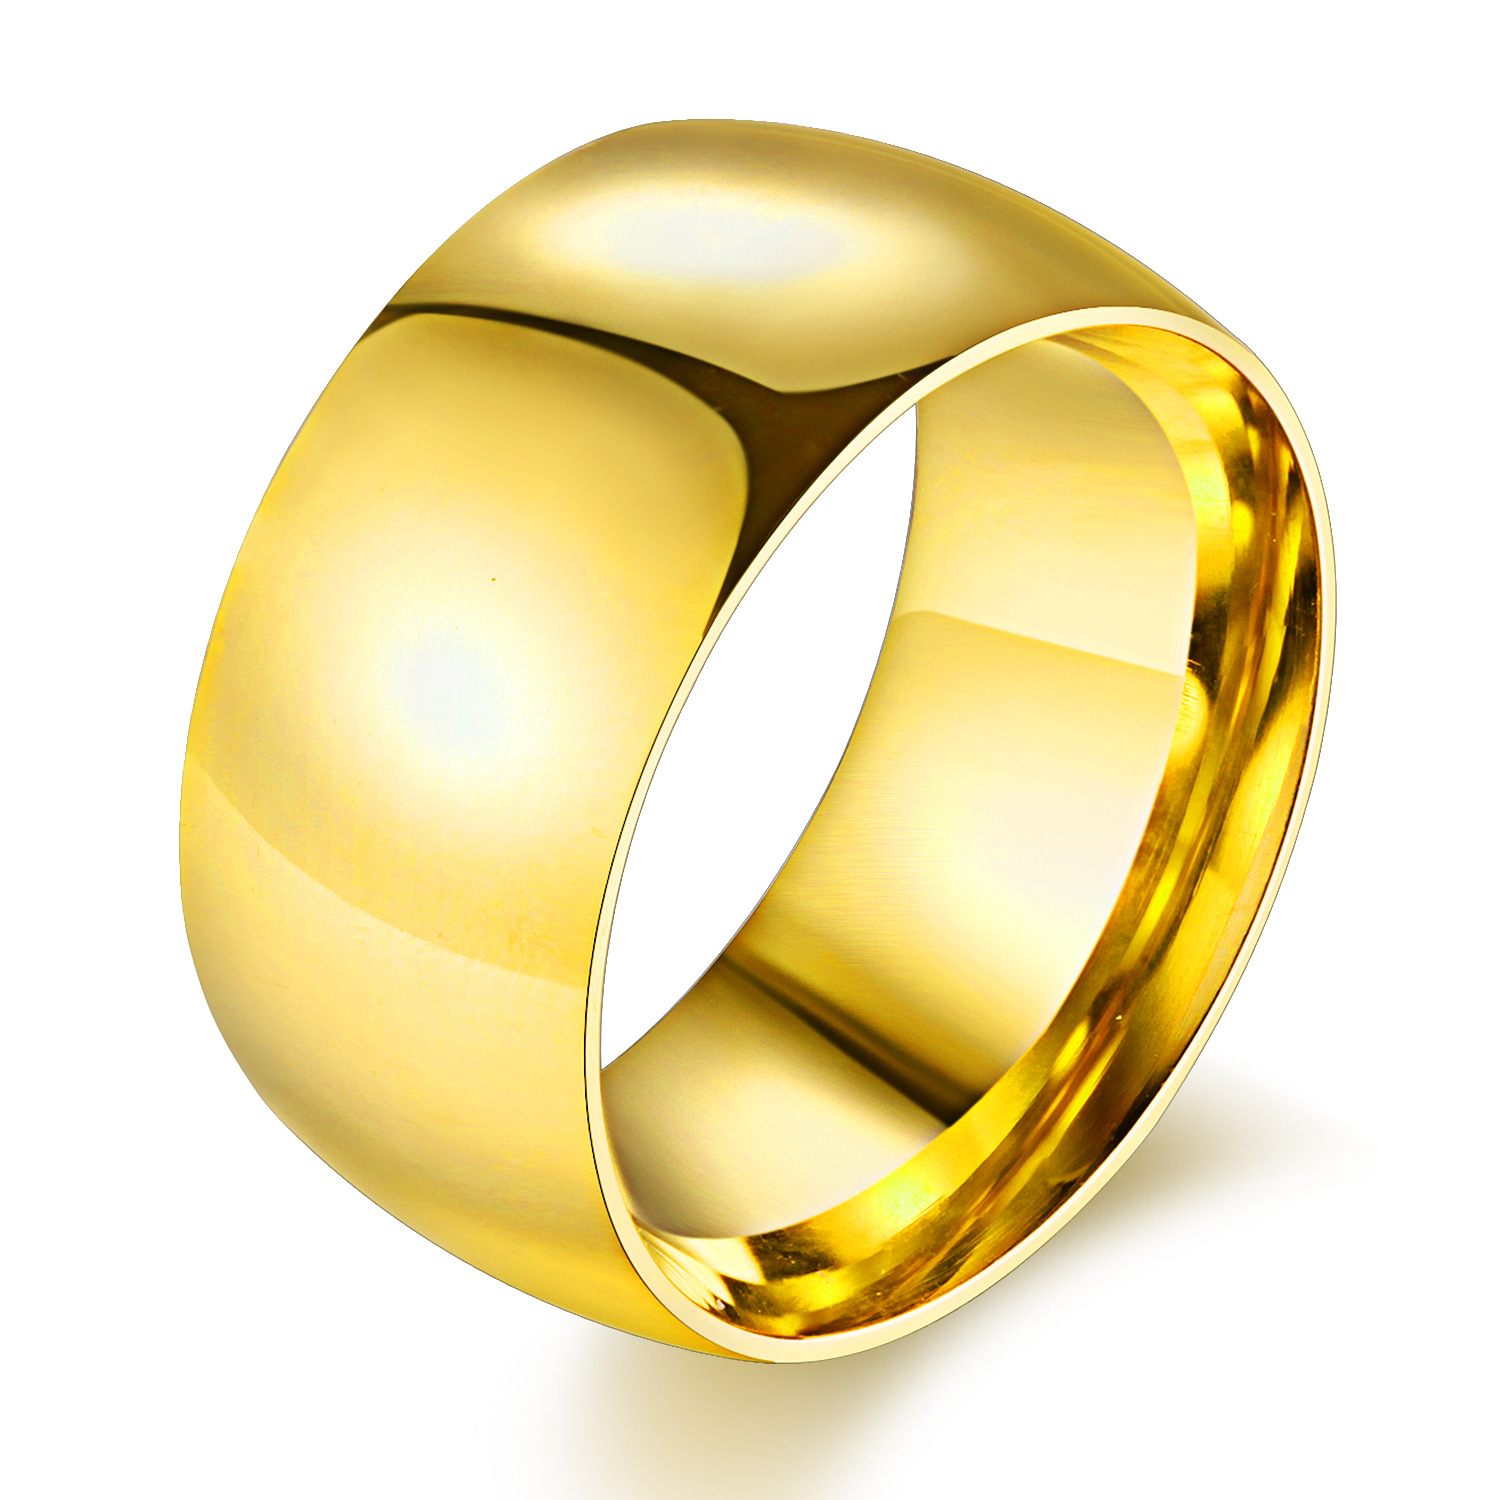 Fashion Smooth 100 Pure Titanium Steel Ring 11mm Wide Goldsilverblack Color Wedding Rings For Women And Men Anel Jewelery: 11 Mm Wedding Bands At Reisefeber.org